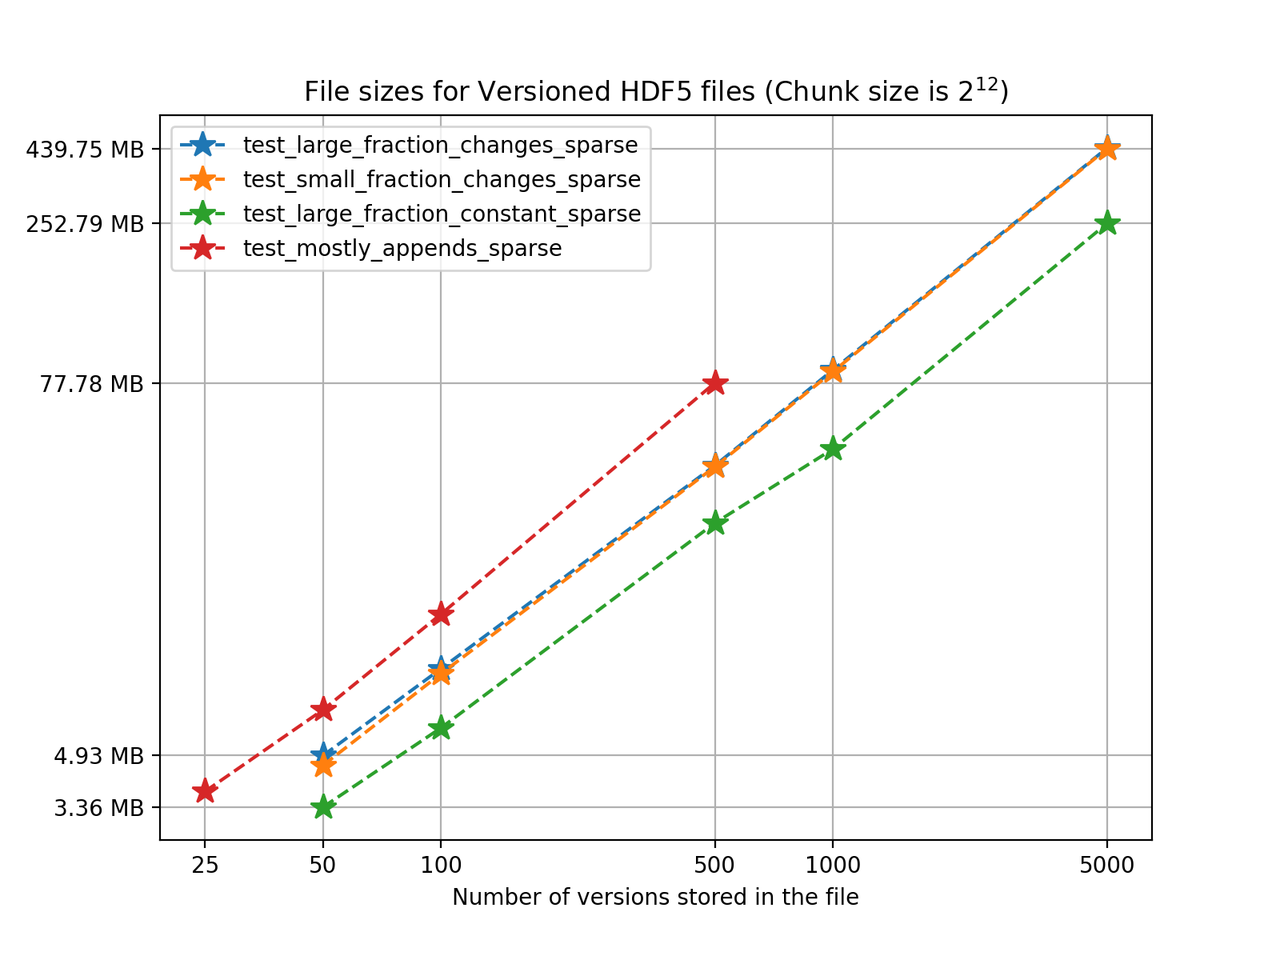 File sizes for <code>versioned-hdf5</code> files